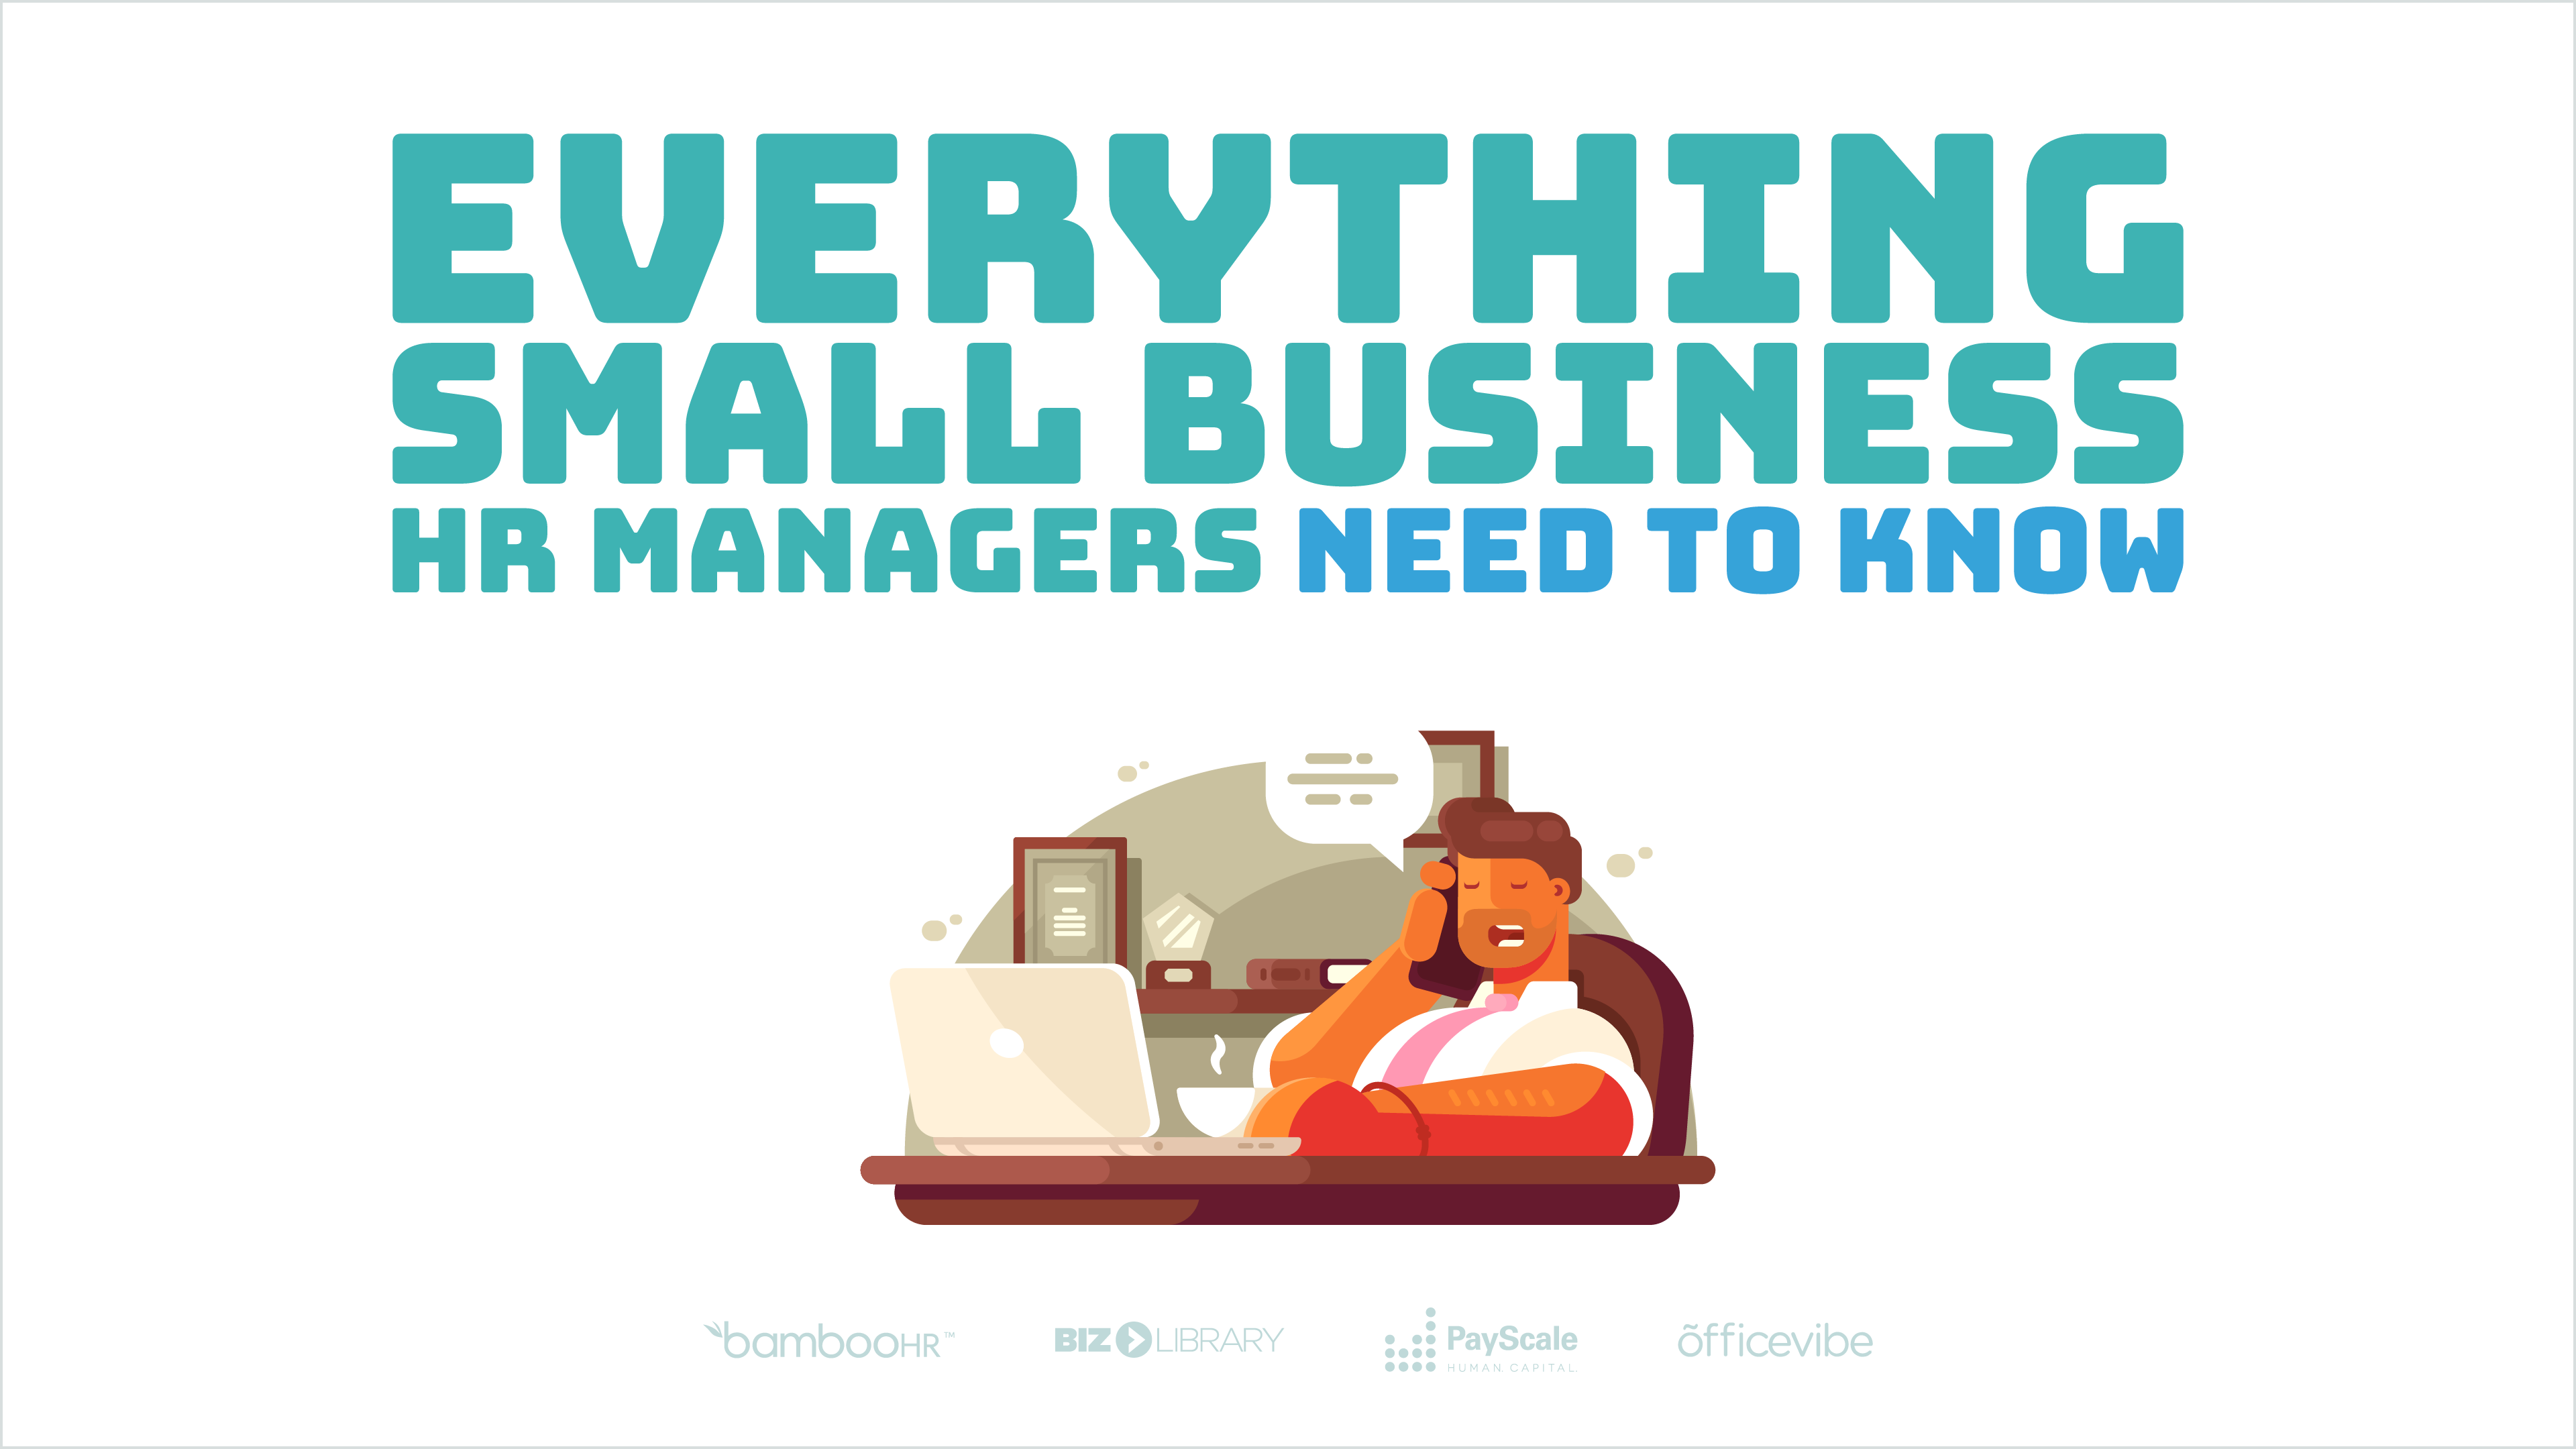 Everything Small Business HR Managers Need to Know